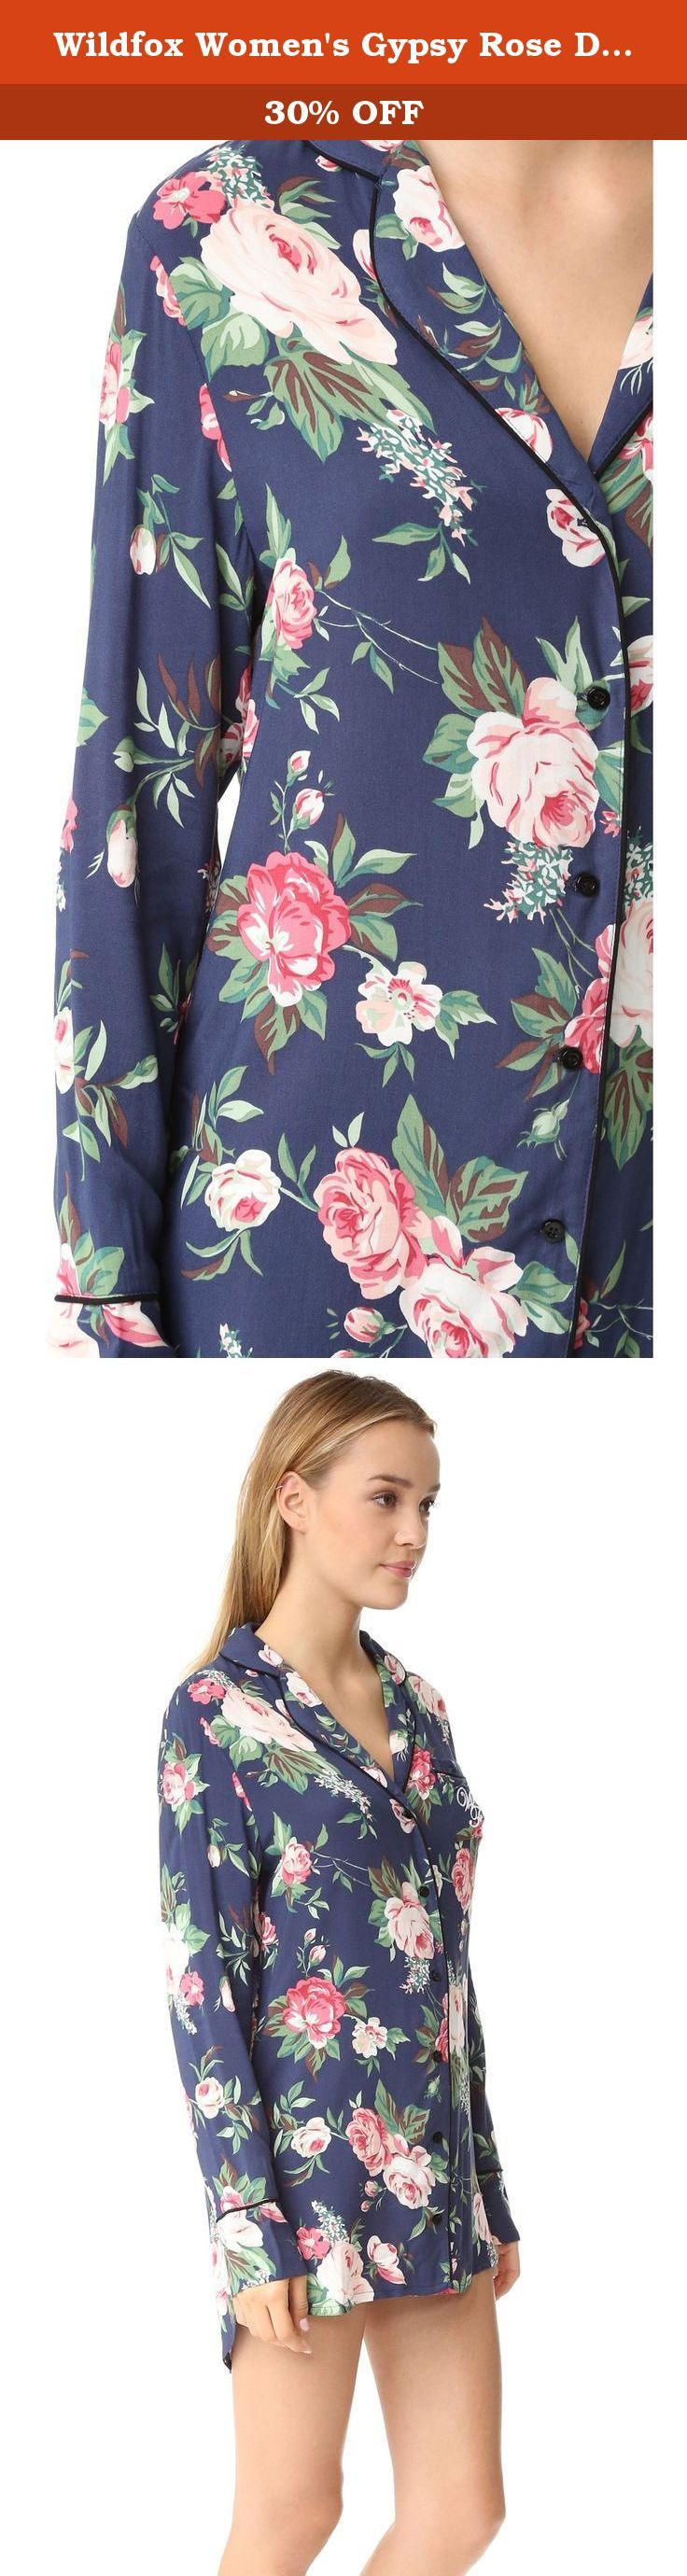 Wildfox Women's Gypsy Rose Dreamer Sleepshirt, Gypsy Rose, X-Small. A lightweight, floral Wildfox pajama shirt trimmed with contrast piping, a notched collar and buttoned placket for a vintage-inspired look. Long-sleeves.